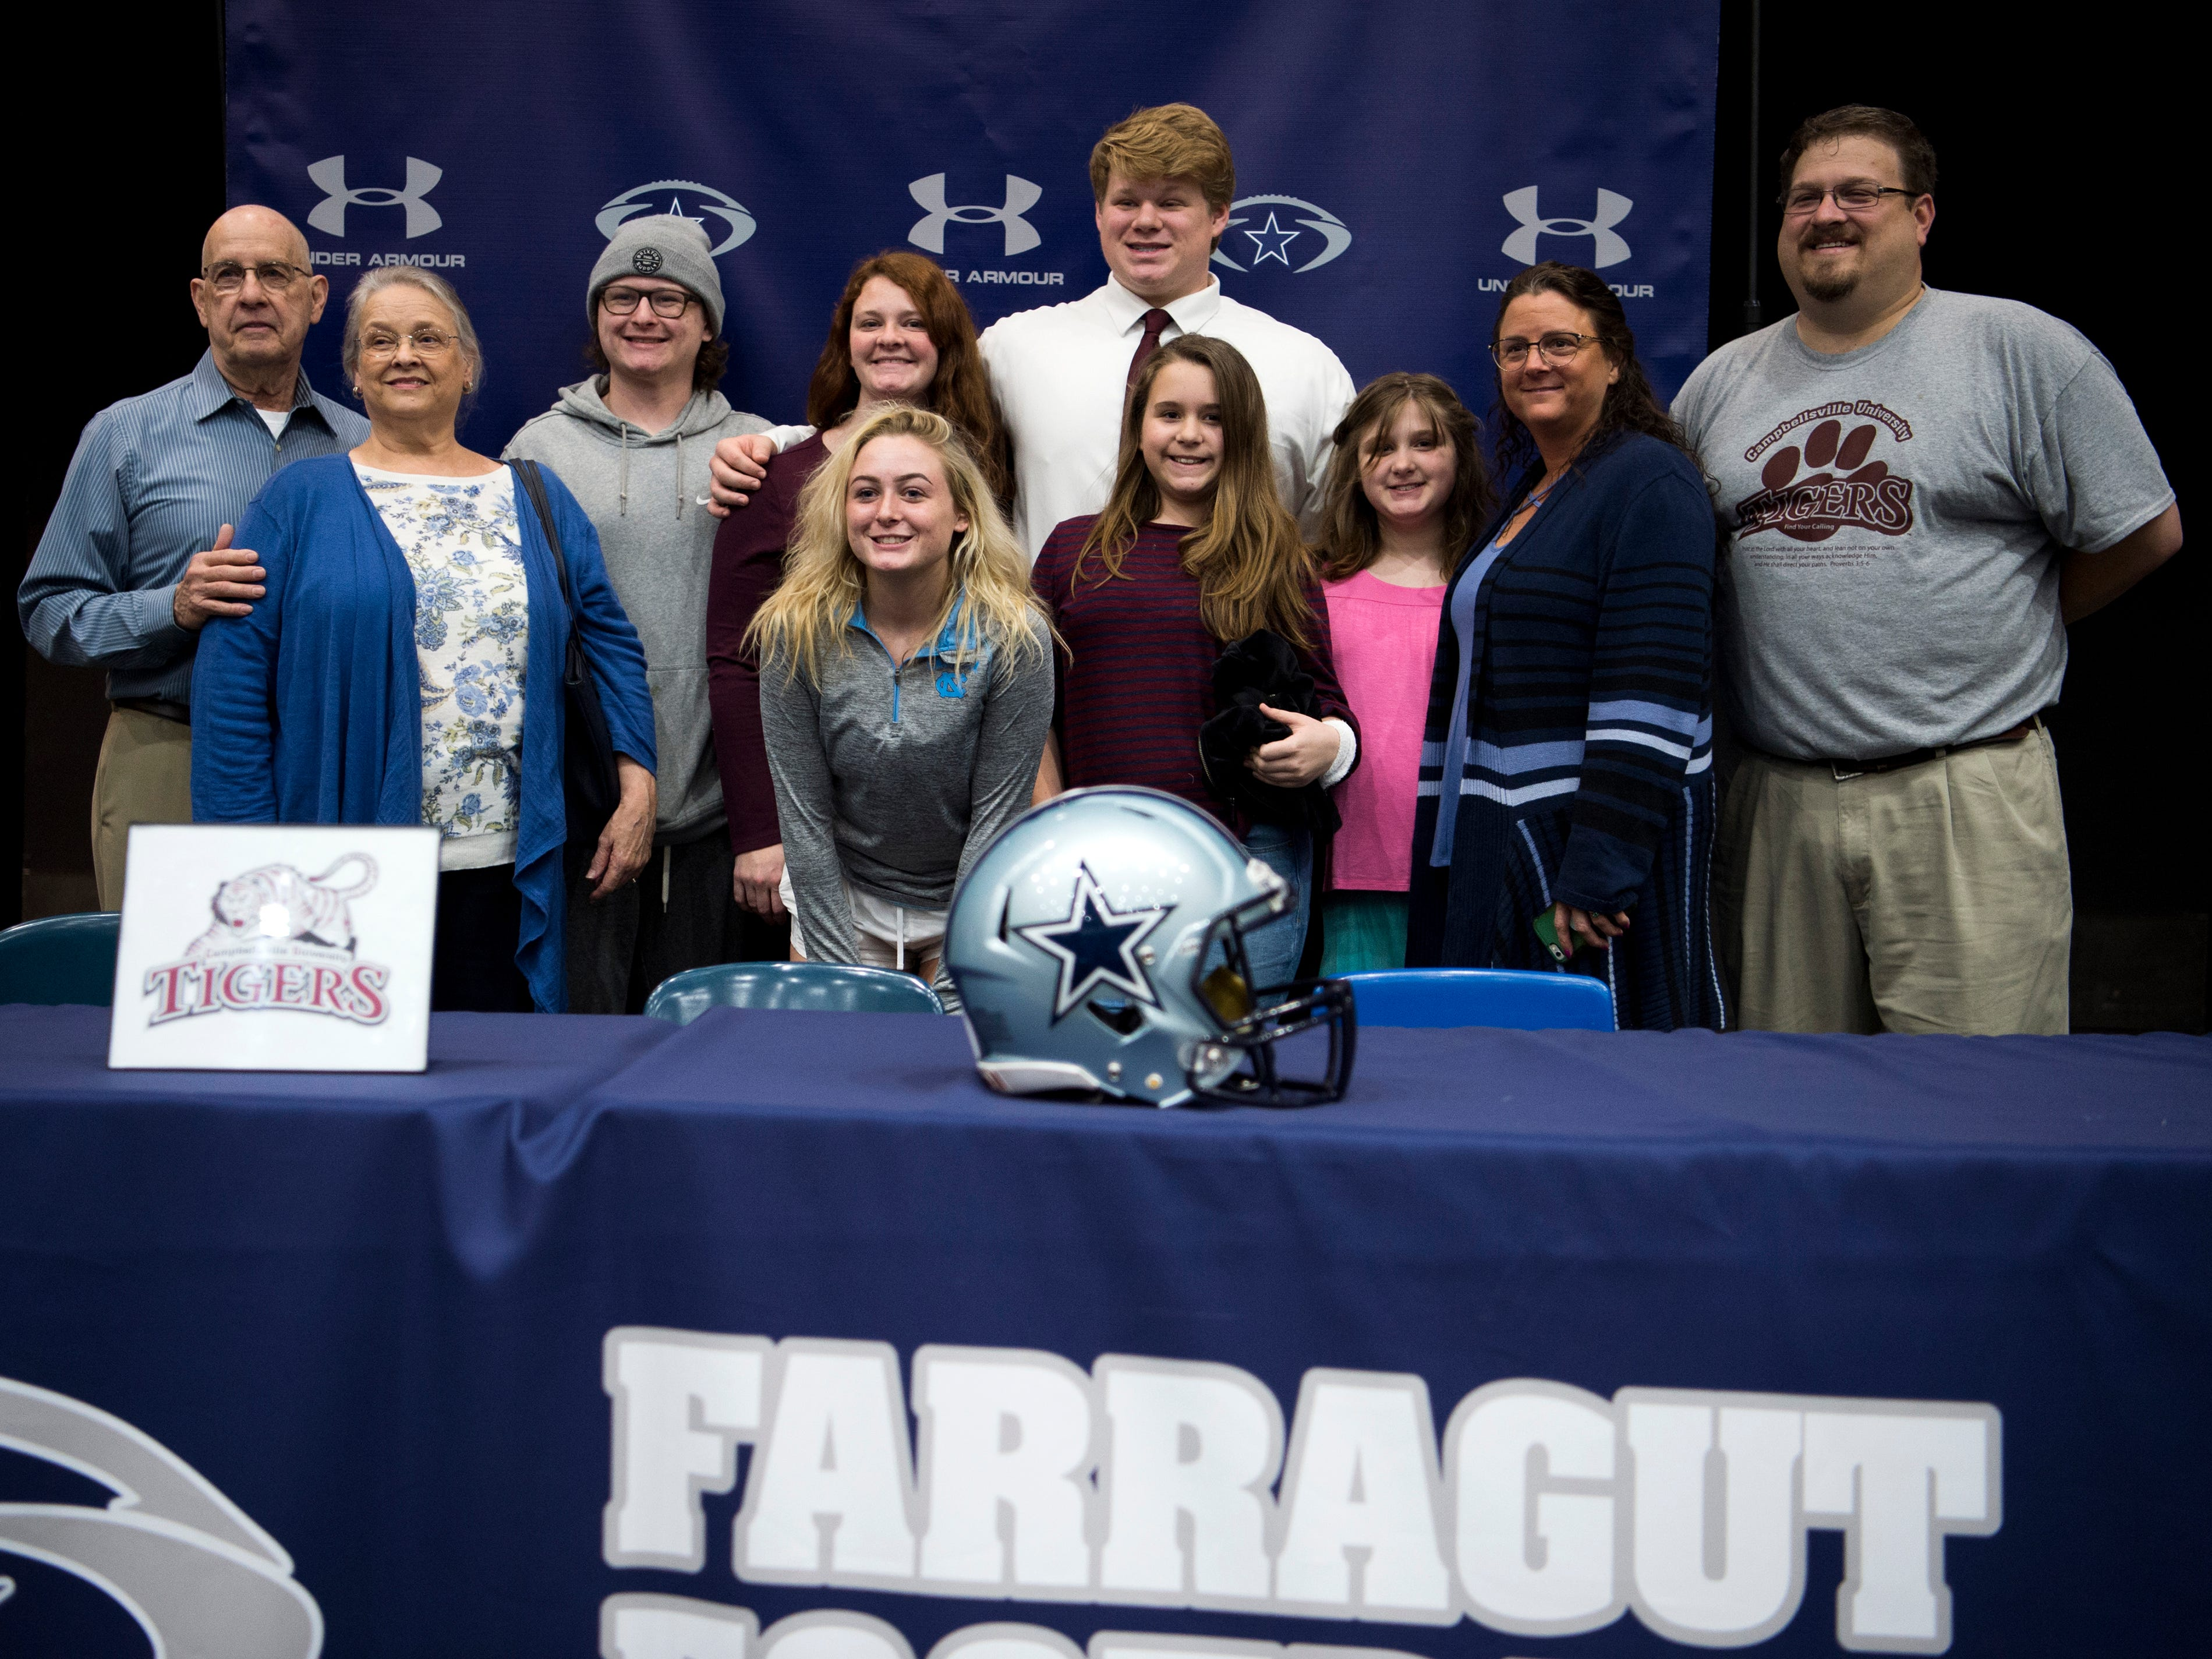 Farragut football player Ethan Gossage during a National Signing Day event at Farragut High's auditorium on Wednesday, February 6, 2019.